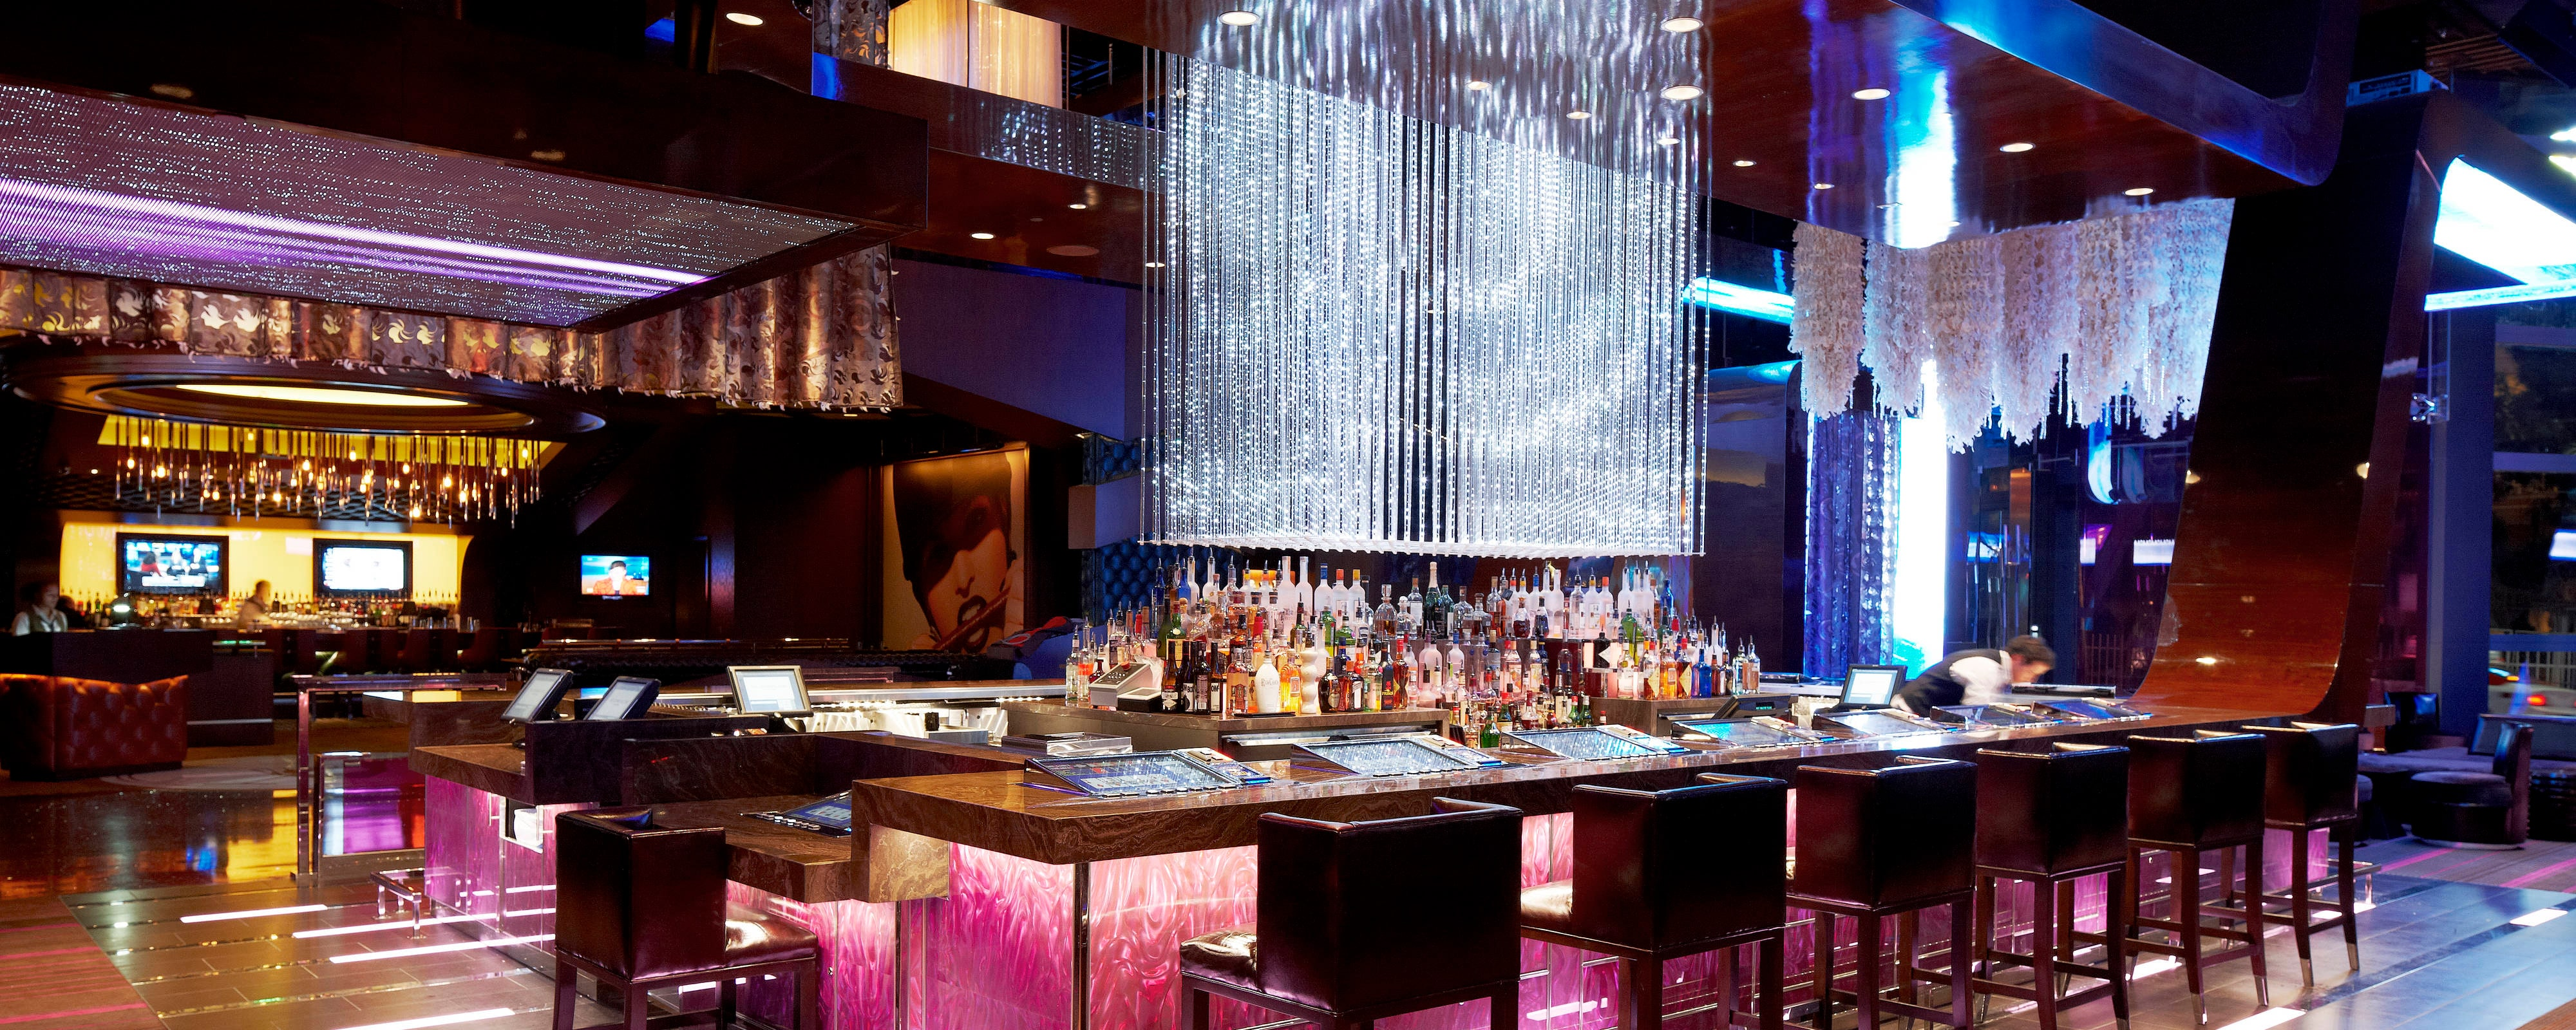 Las Vegas Hotel Restaurants The Cosmopolitan Of Autograph Collection Dining Marriott Hotels